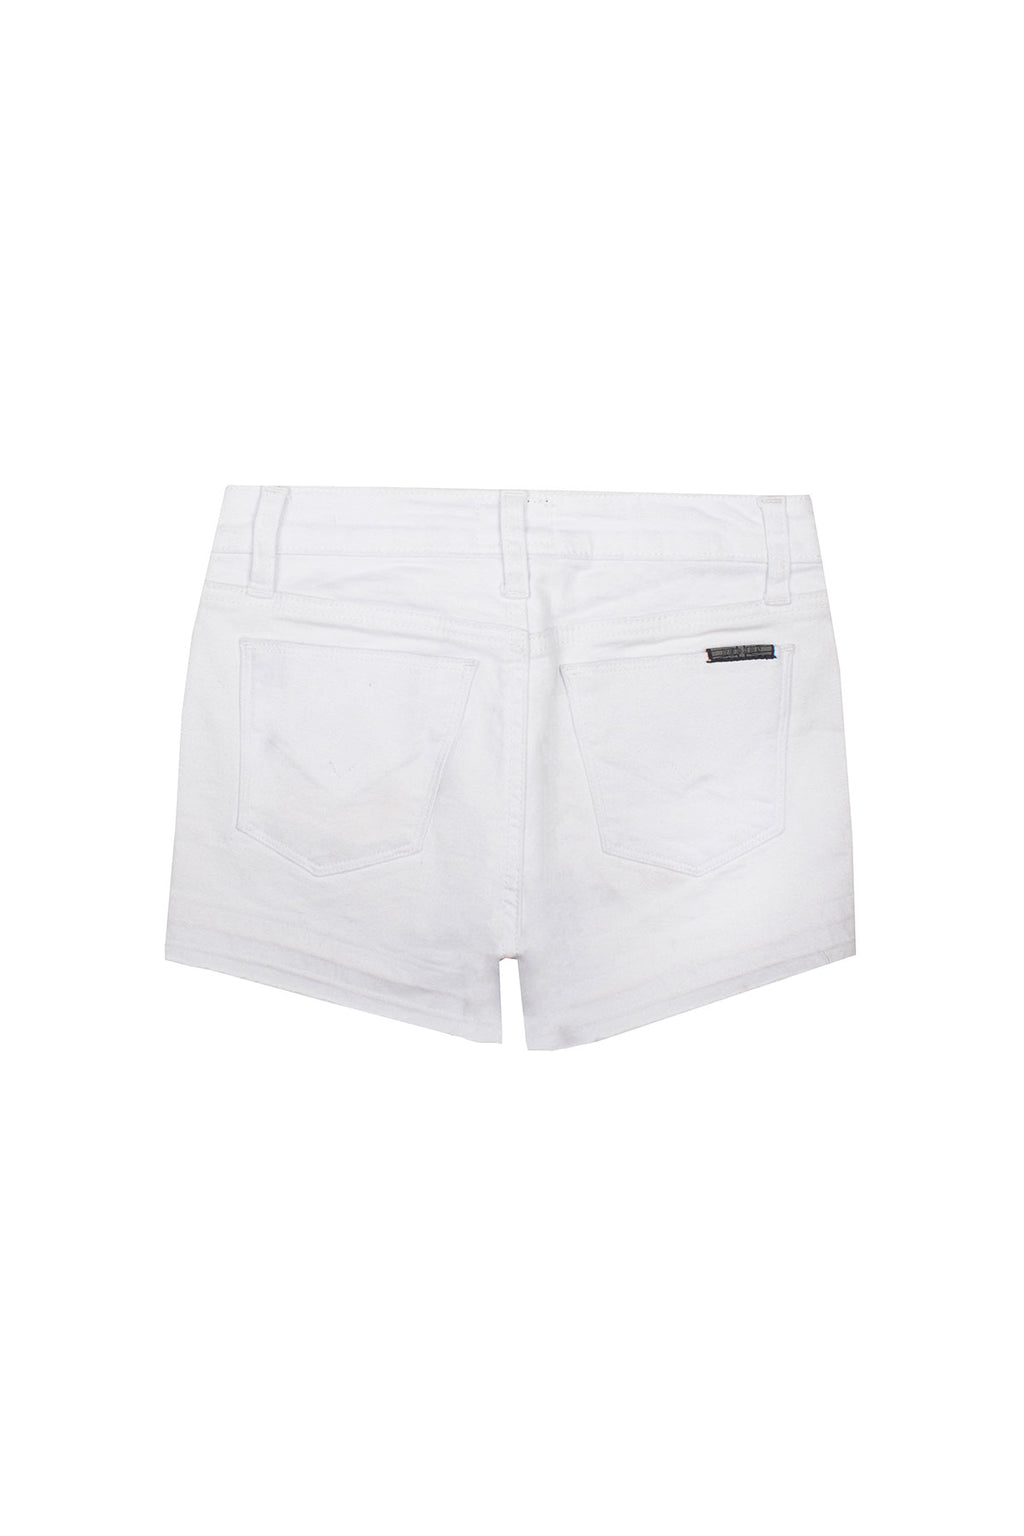 GIRLS AVA SHORT, SIZES 2T-6X - WHITE - Image 2